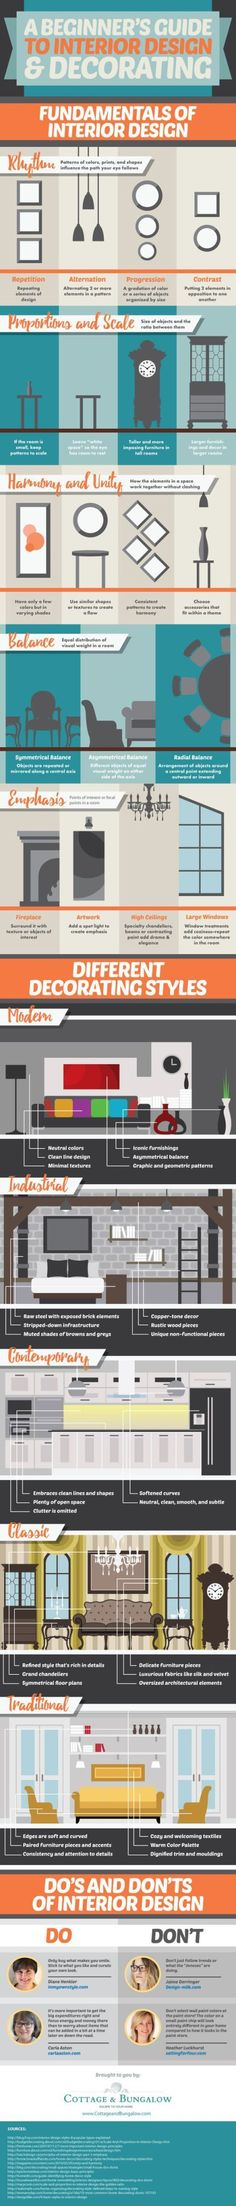 How to decorate like a pro - Info graphics